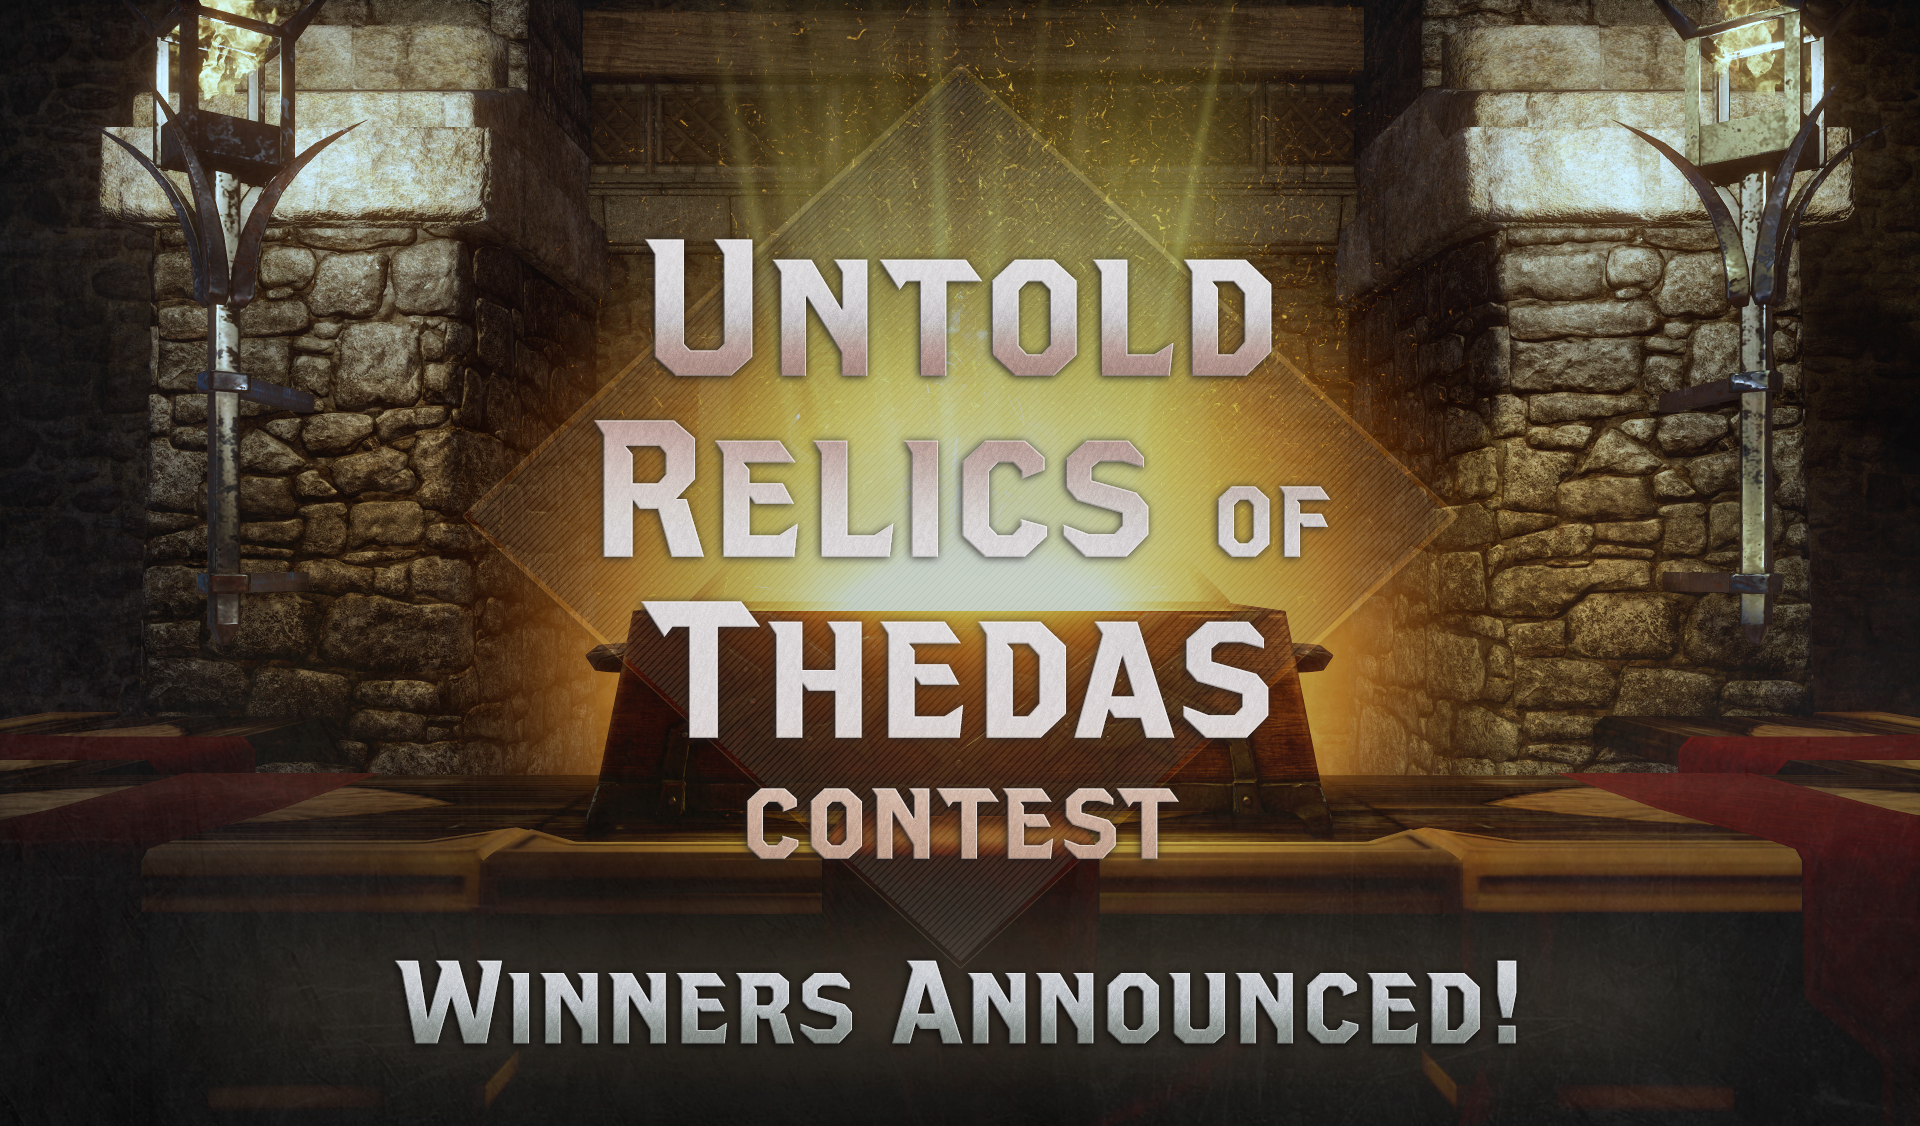 Untold Relics of Thedas Contest Winners